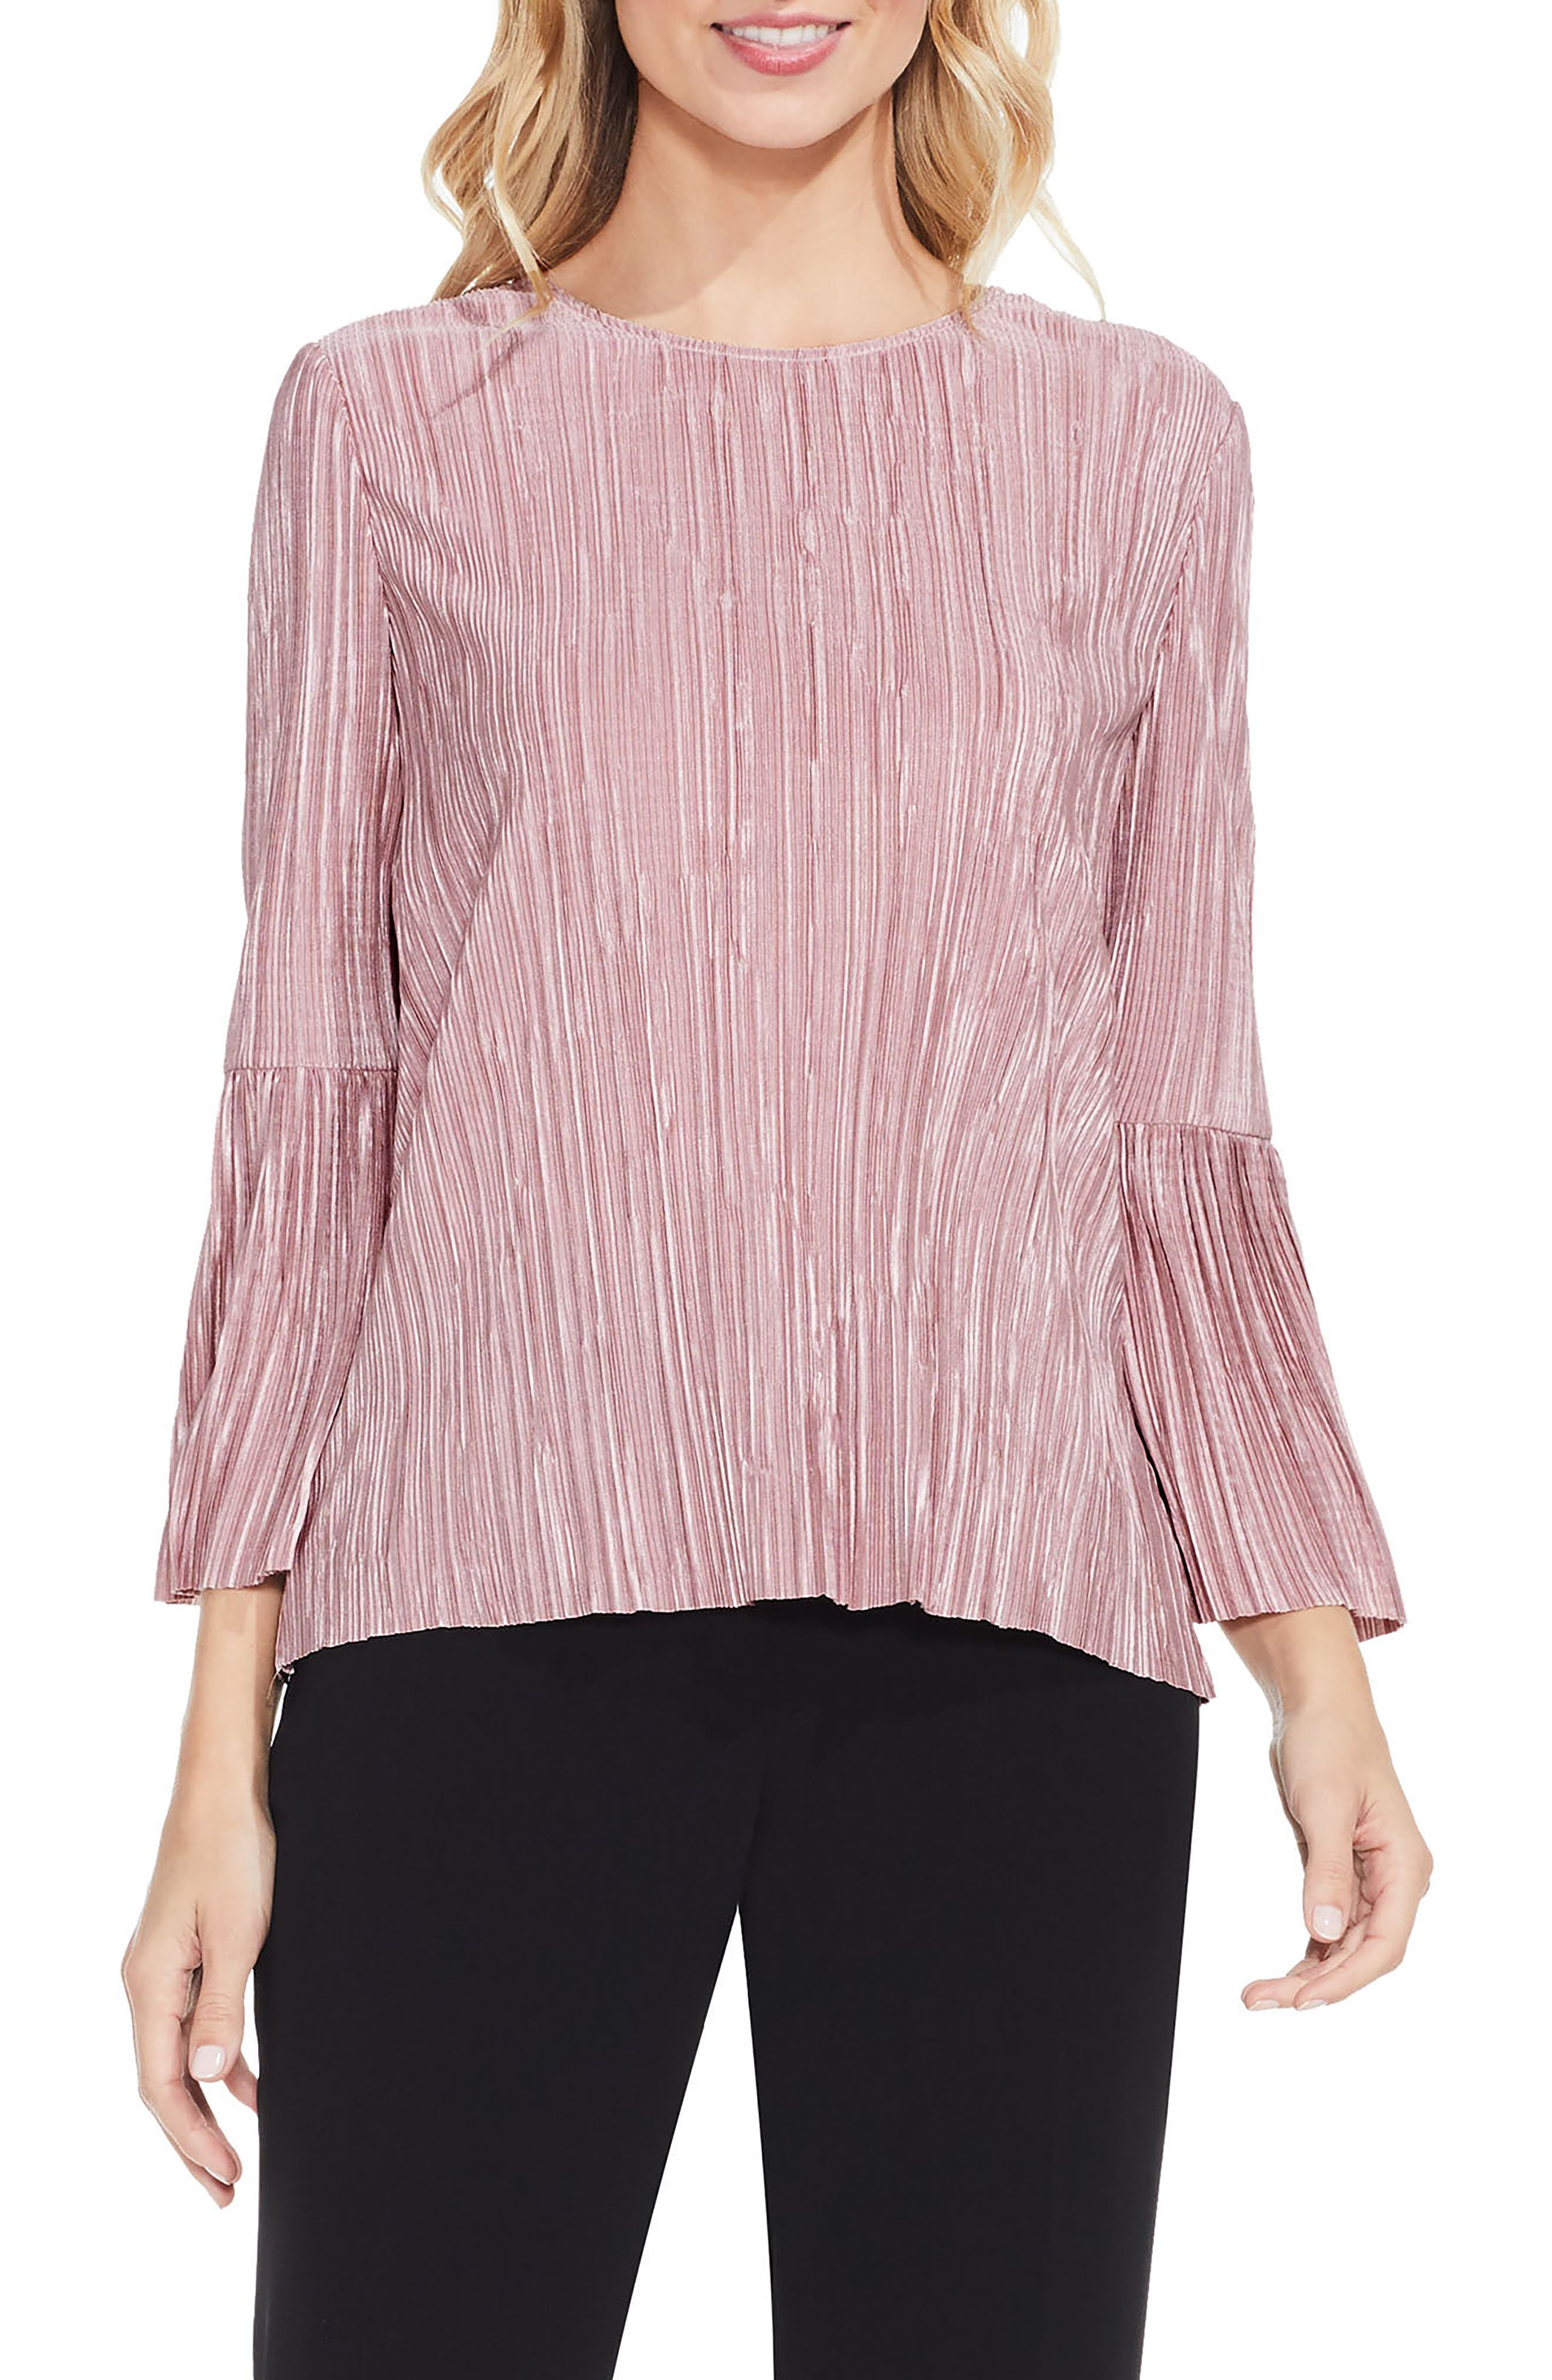 Vince Camuto Pleated Knit Top (Regular & Petite)